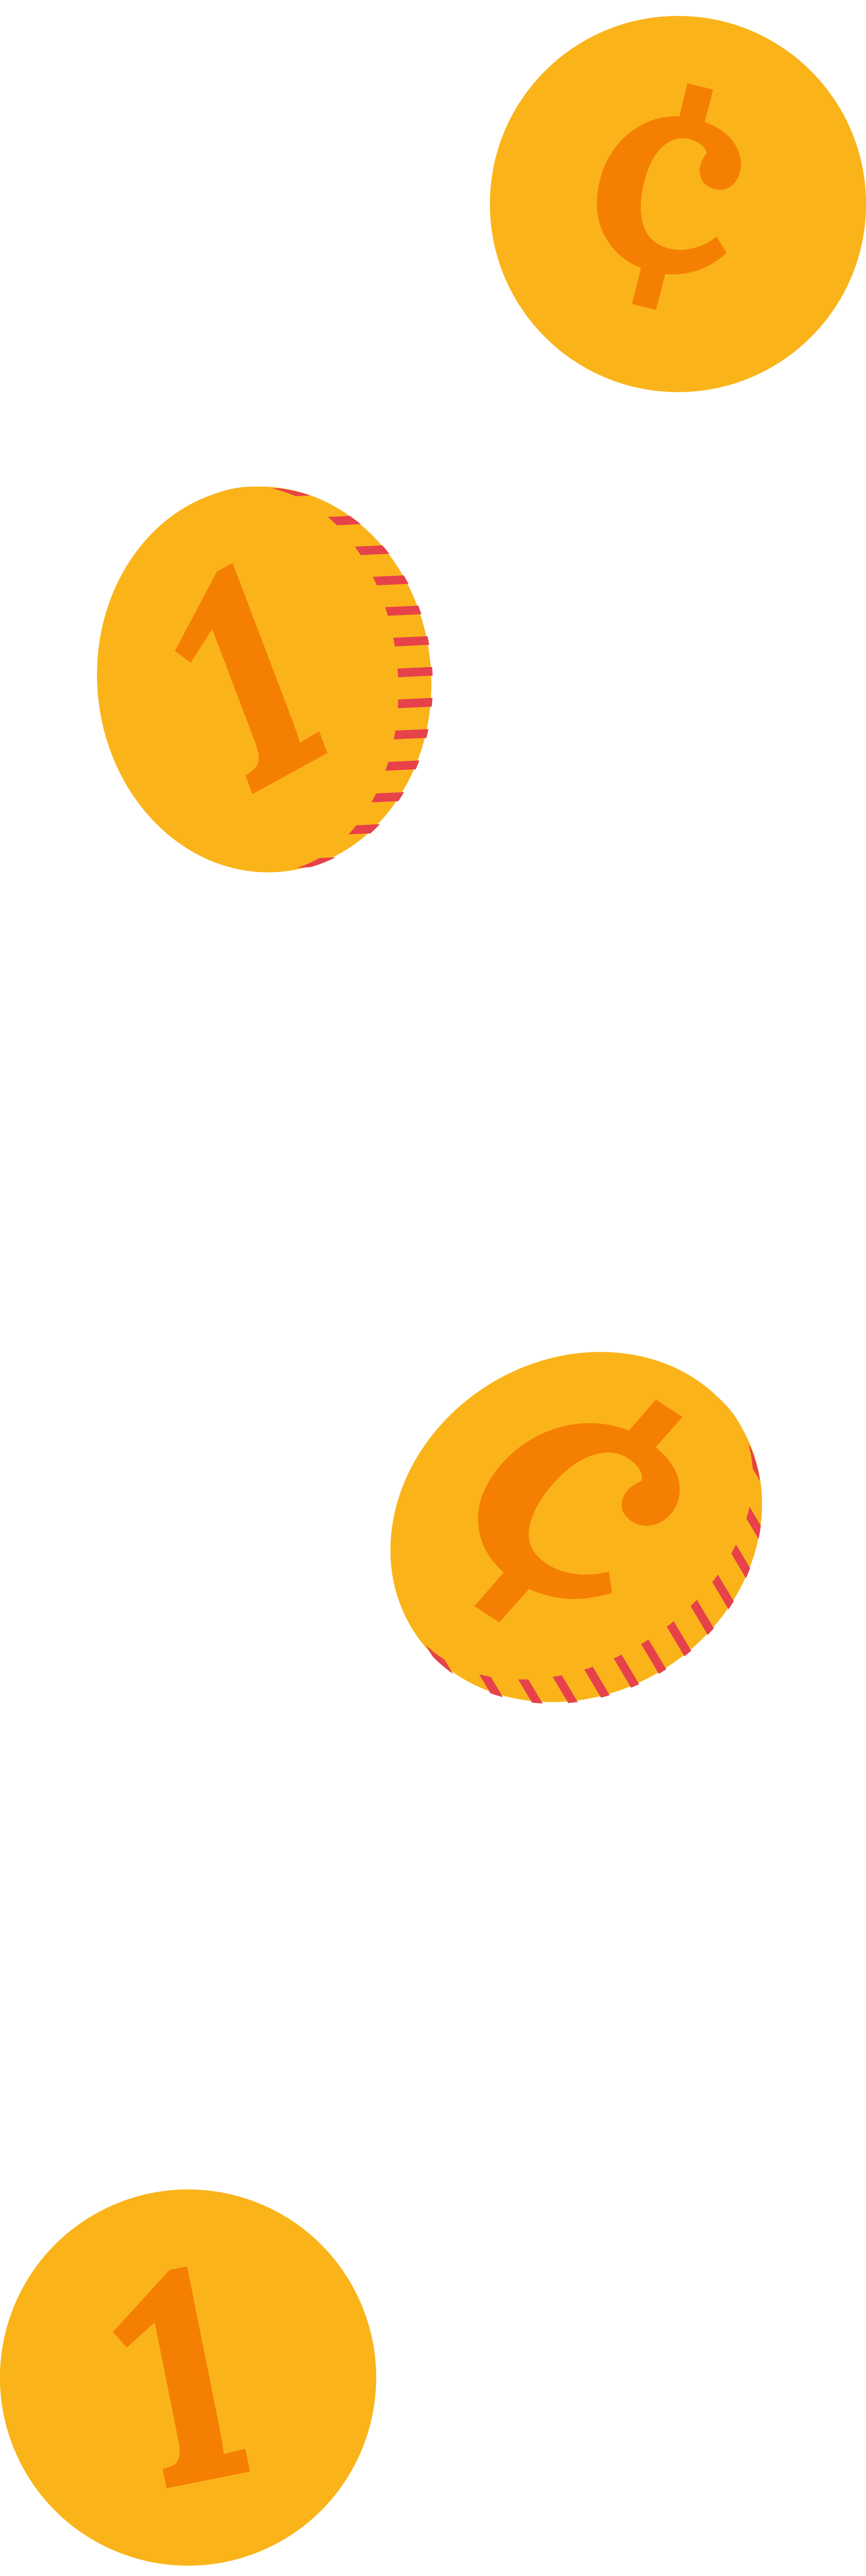 Illustrations of coins.